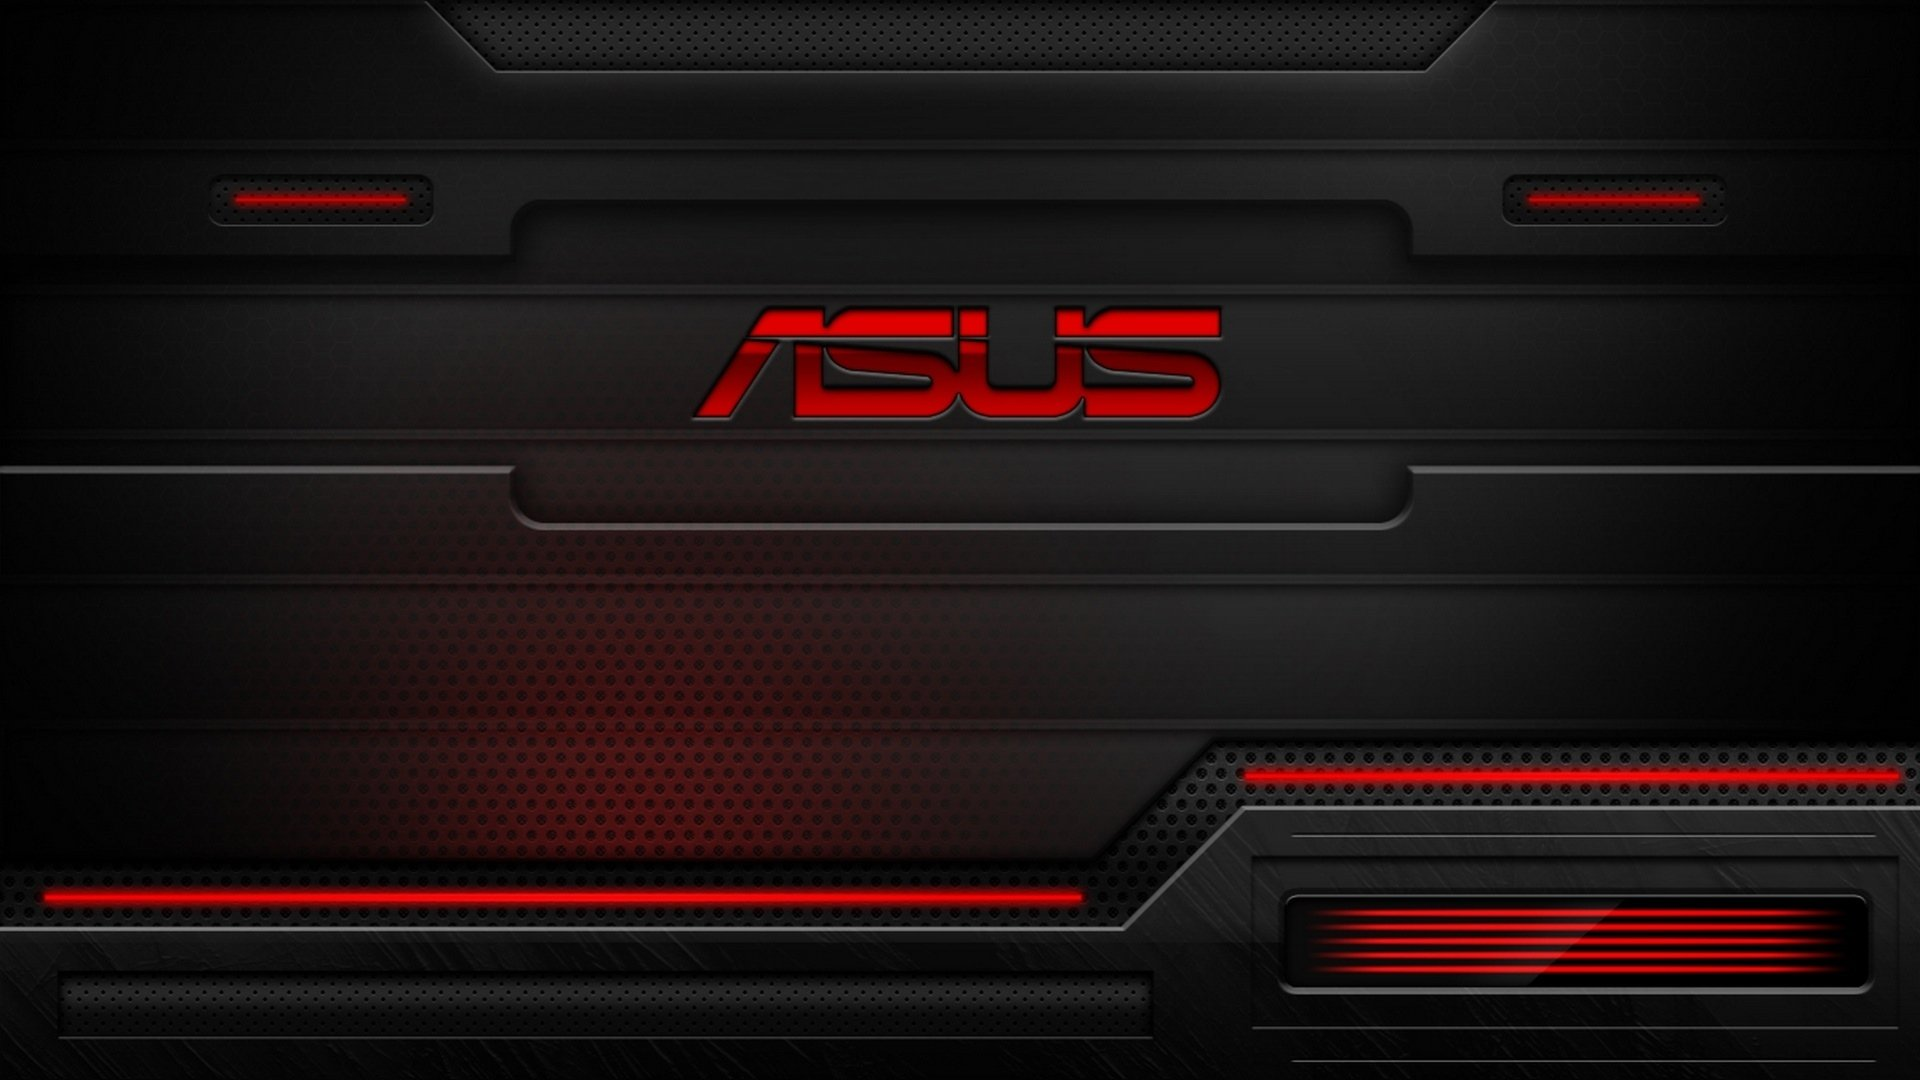 Asus Desktop Wallpaper - WallpaperSafari